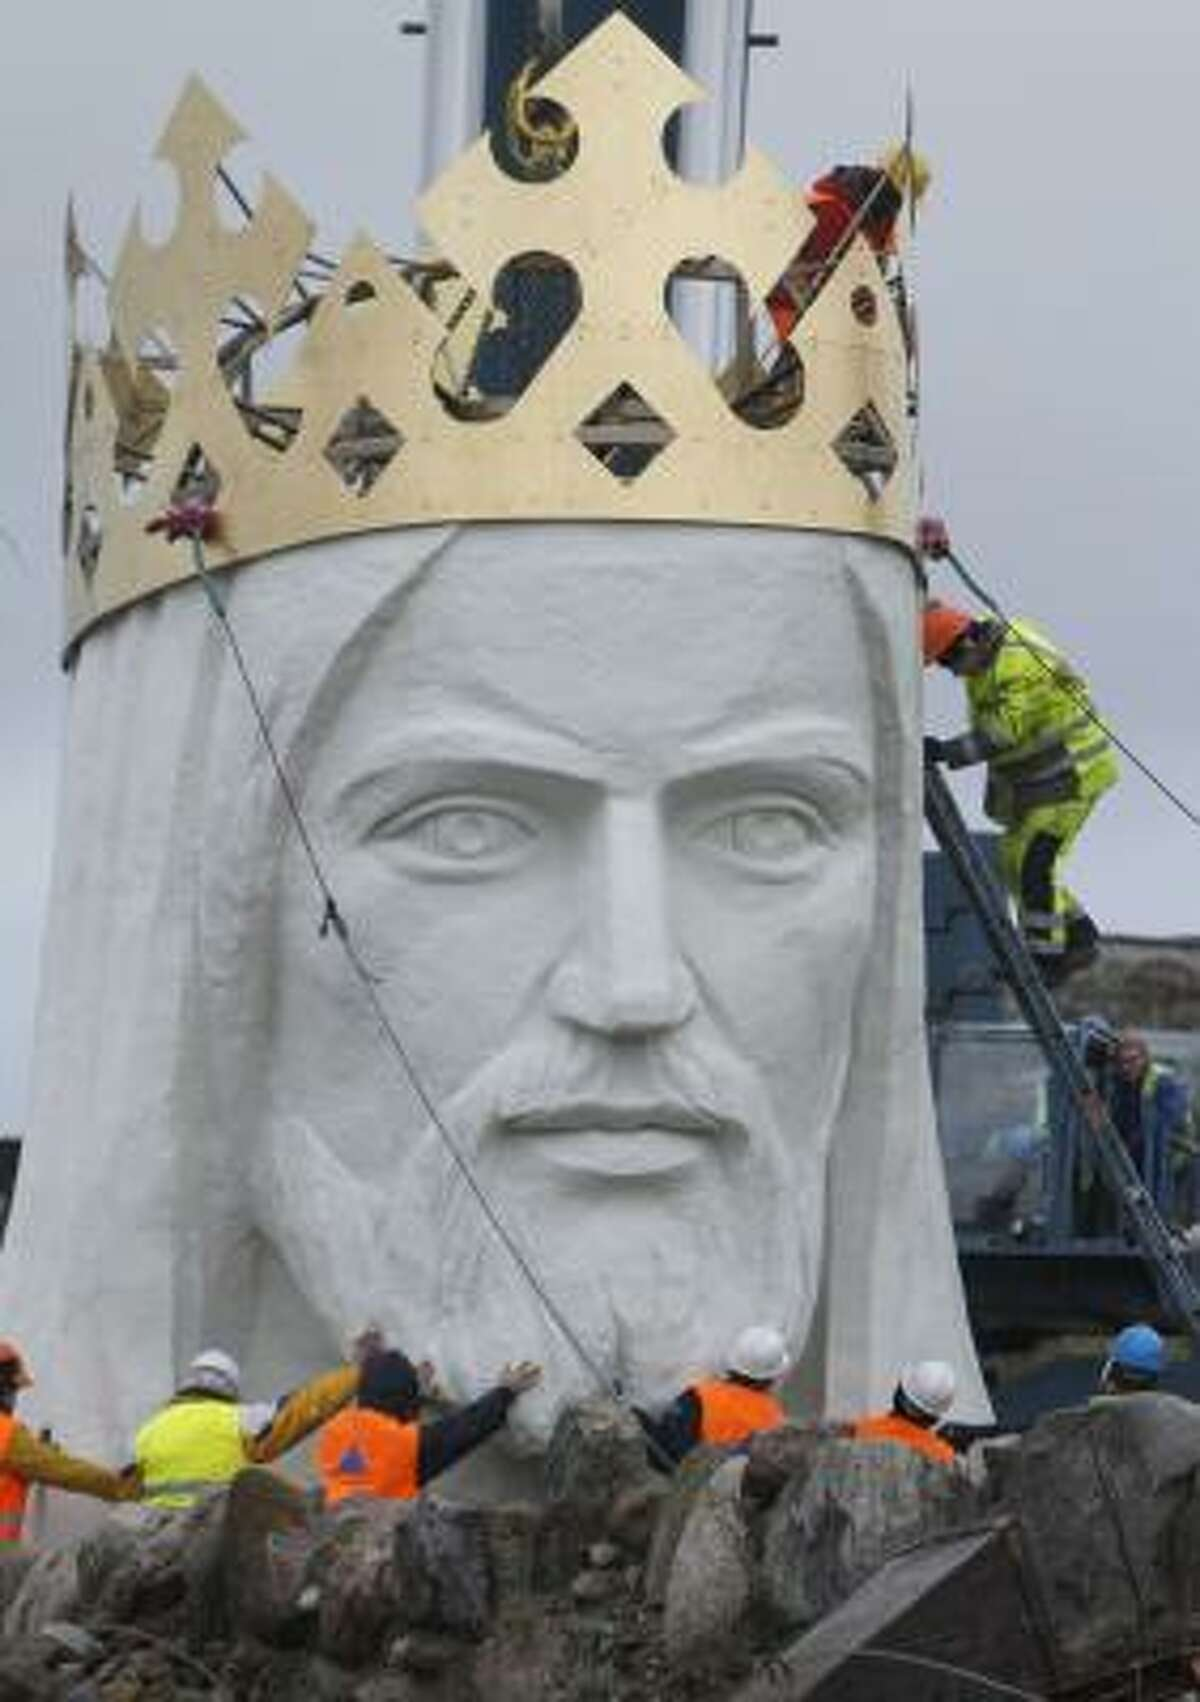 The world's biggest statue of Jesus Christ went up in Western Poland over the weekend.